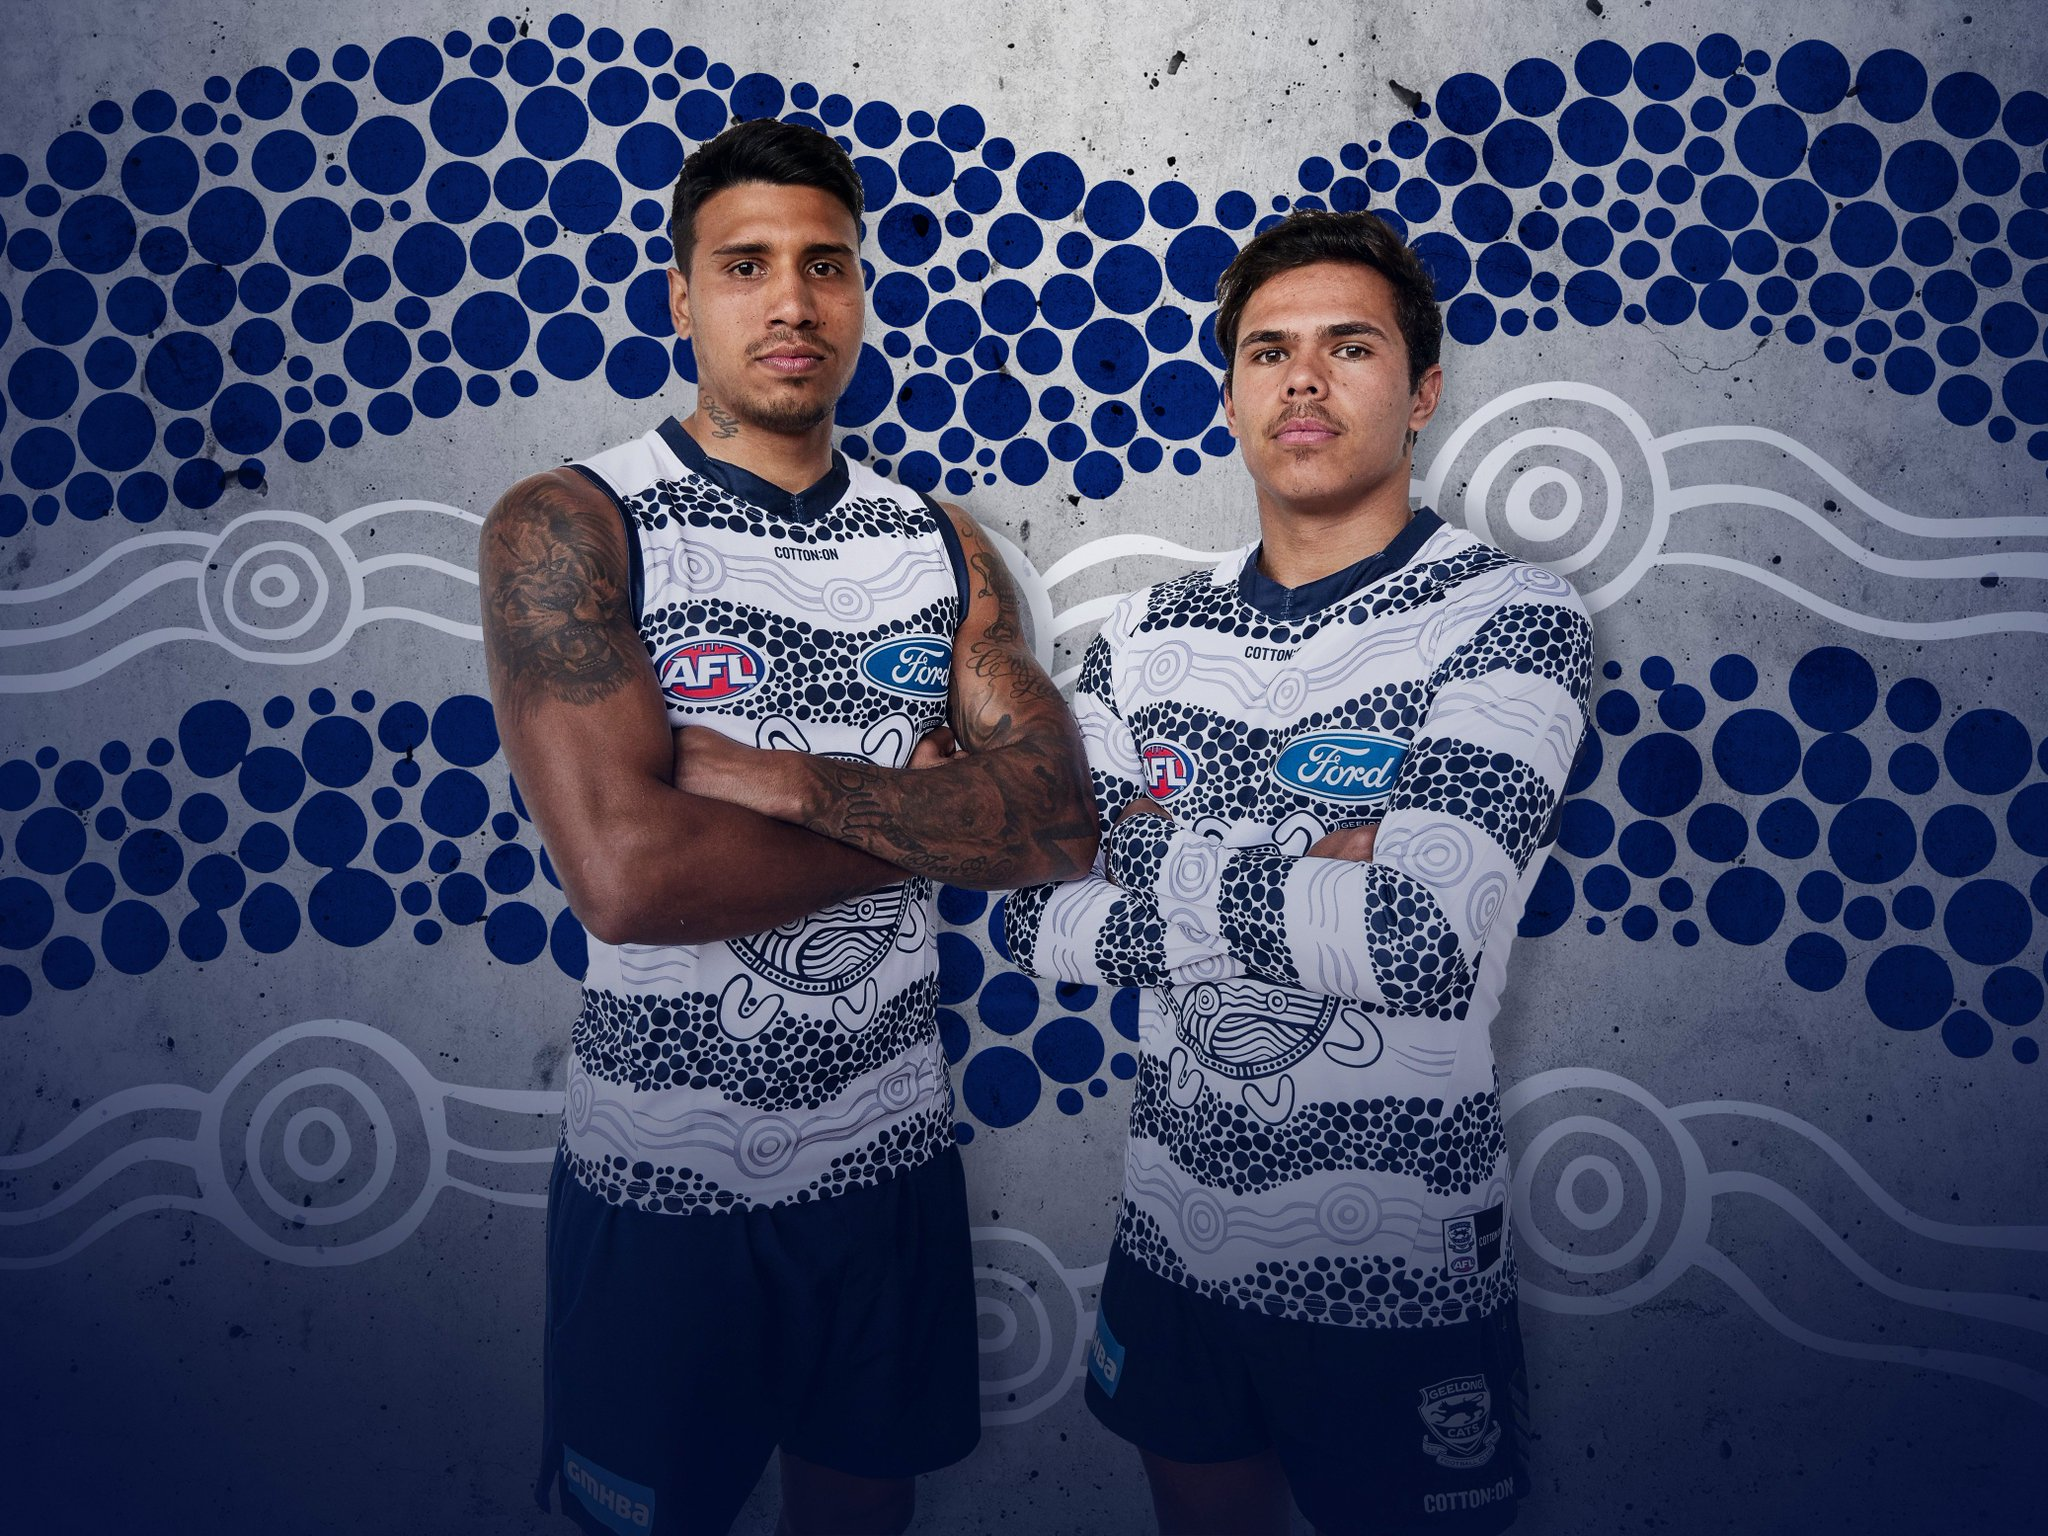 Geelong Cats On Twitter Our 2018 Indigenous Guernsey Which Will Be Worn In Rounds 10 And 11 Standproud Wearegeelong Grab Yours Https T Co Ufwr0i4u27 Https T Co C4ycgst3rq